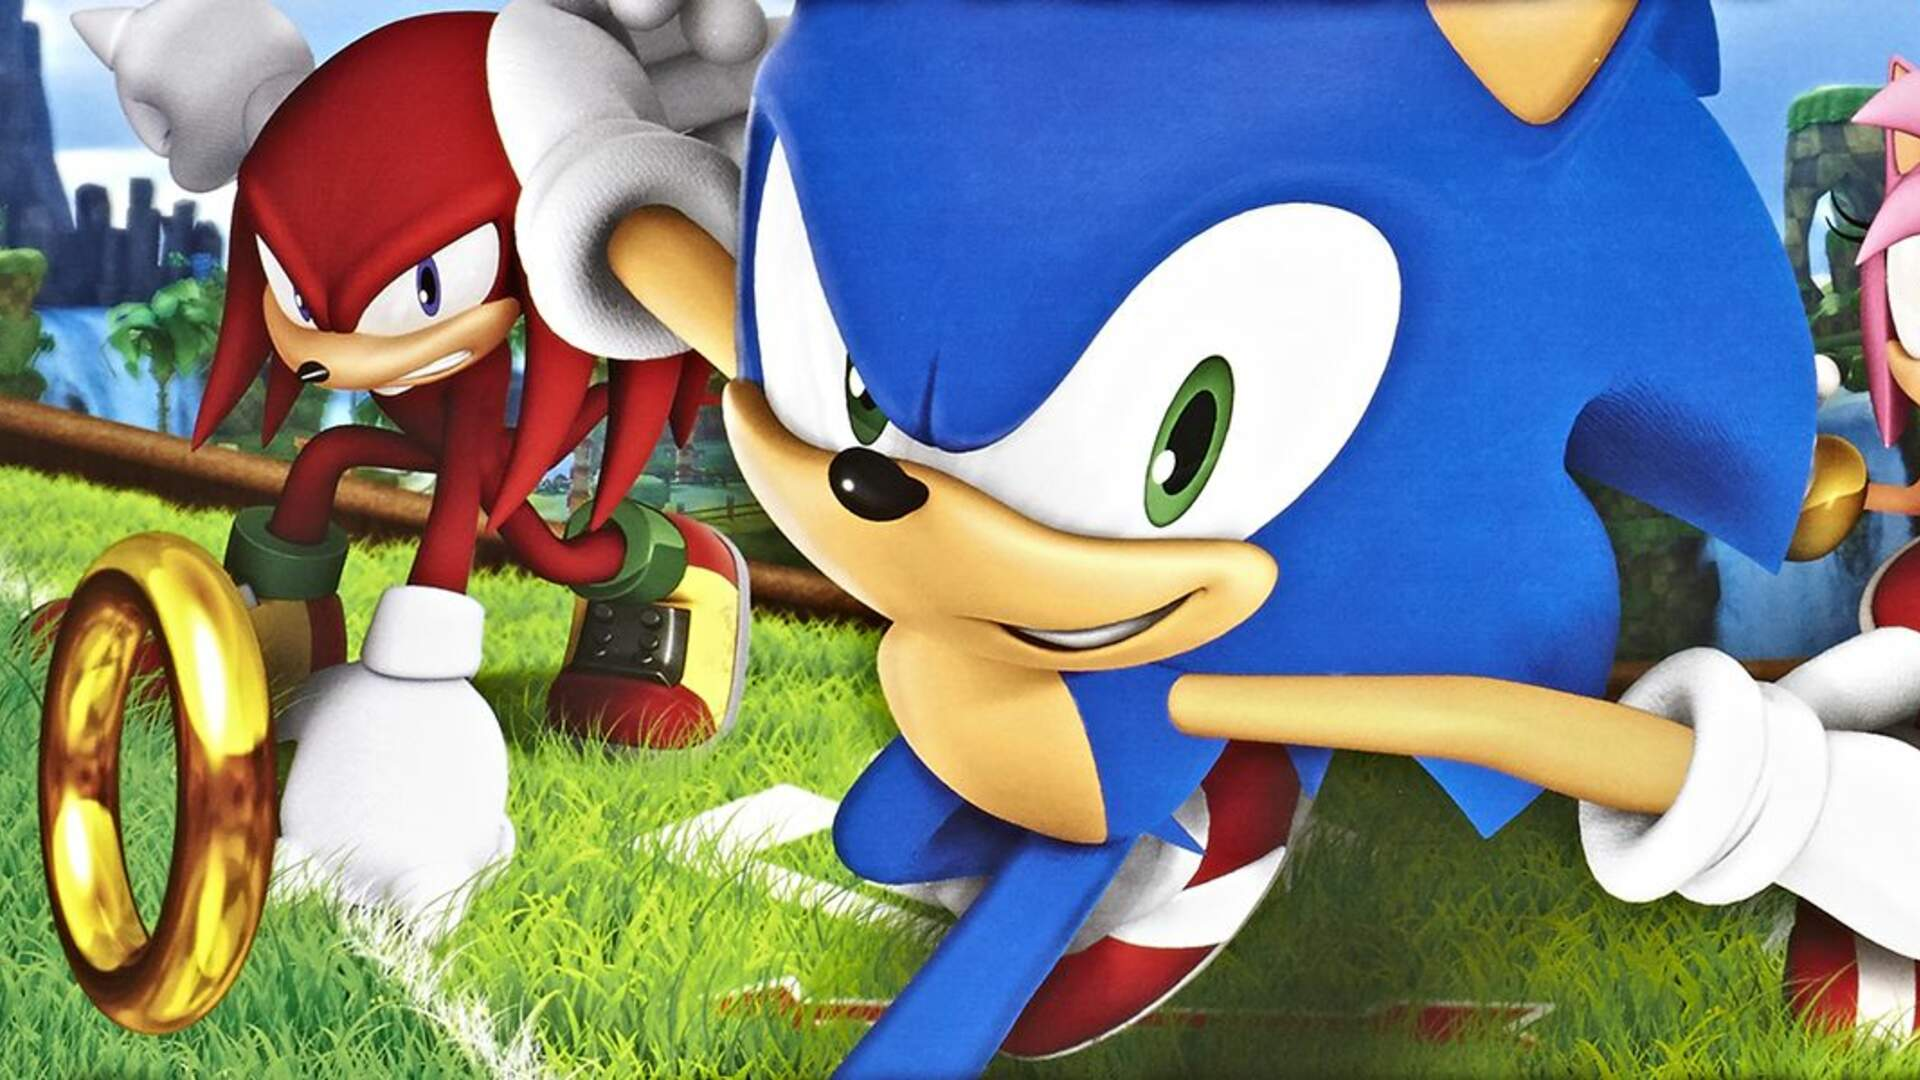 Sonic the Hedgehog Monopoly Livens Up a Boring Game With High-Stakes Boss Fights